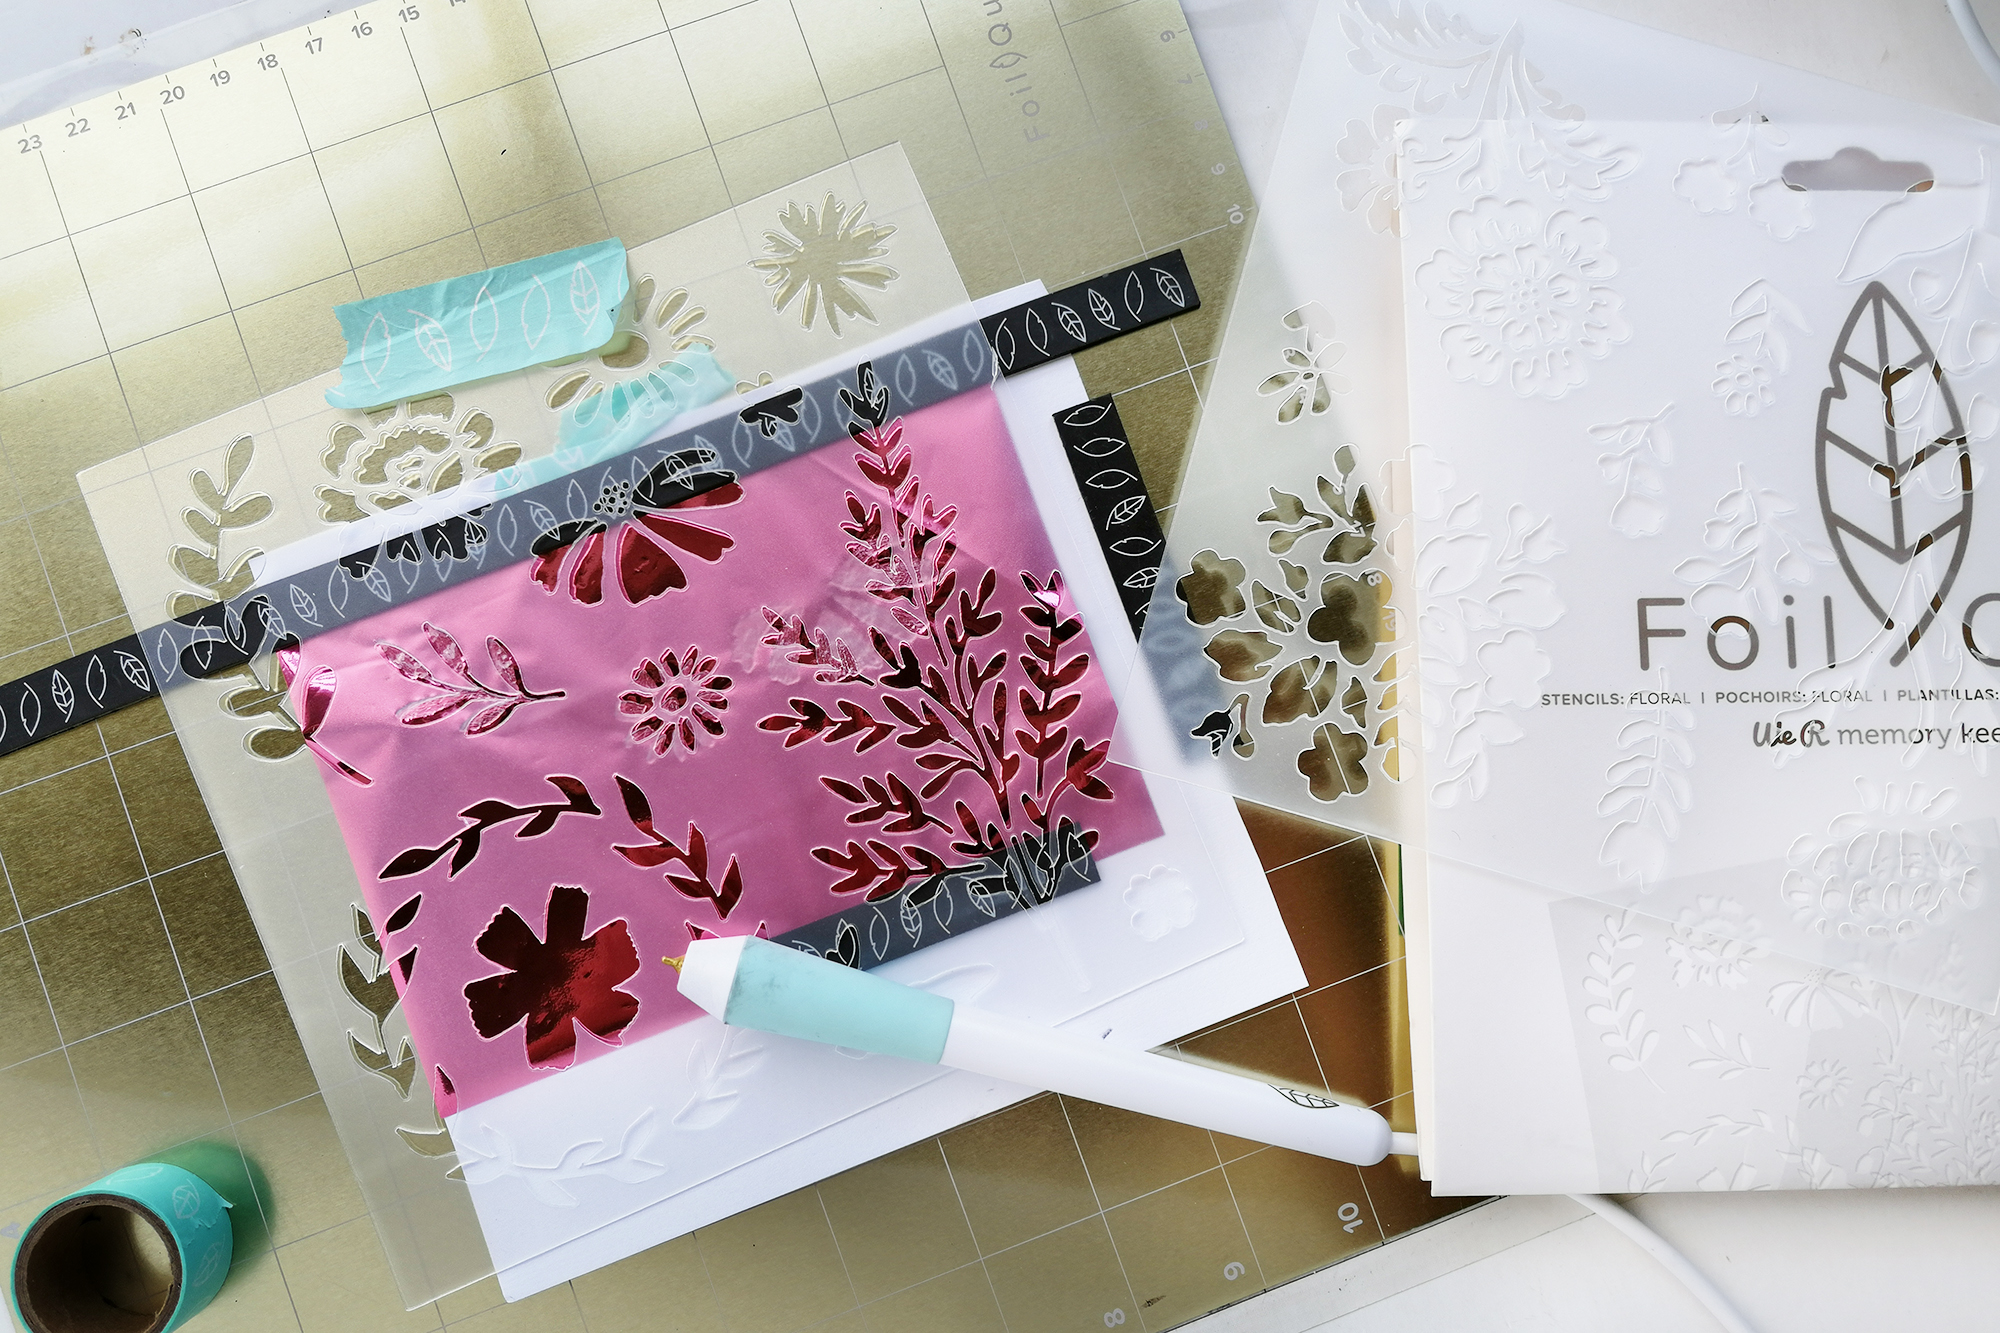 Free-Style-Foil-Quill-Layout-By-Eva-Pizarro-2